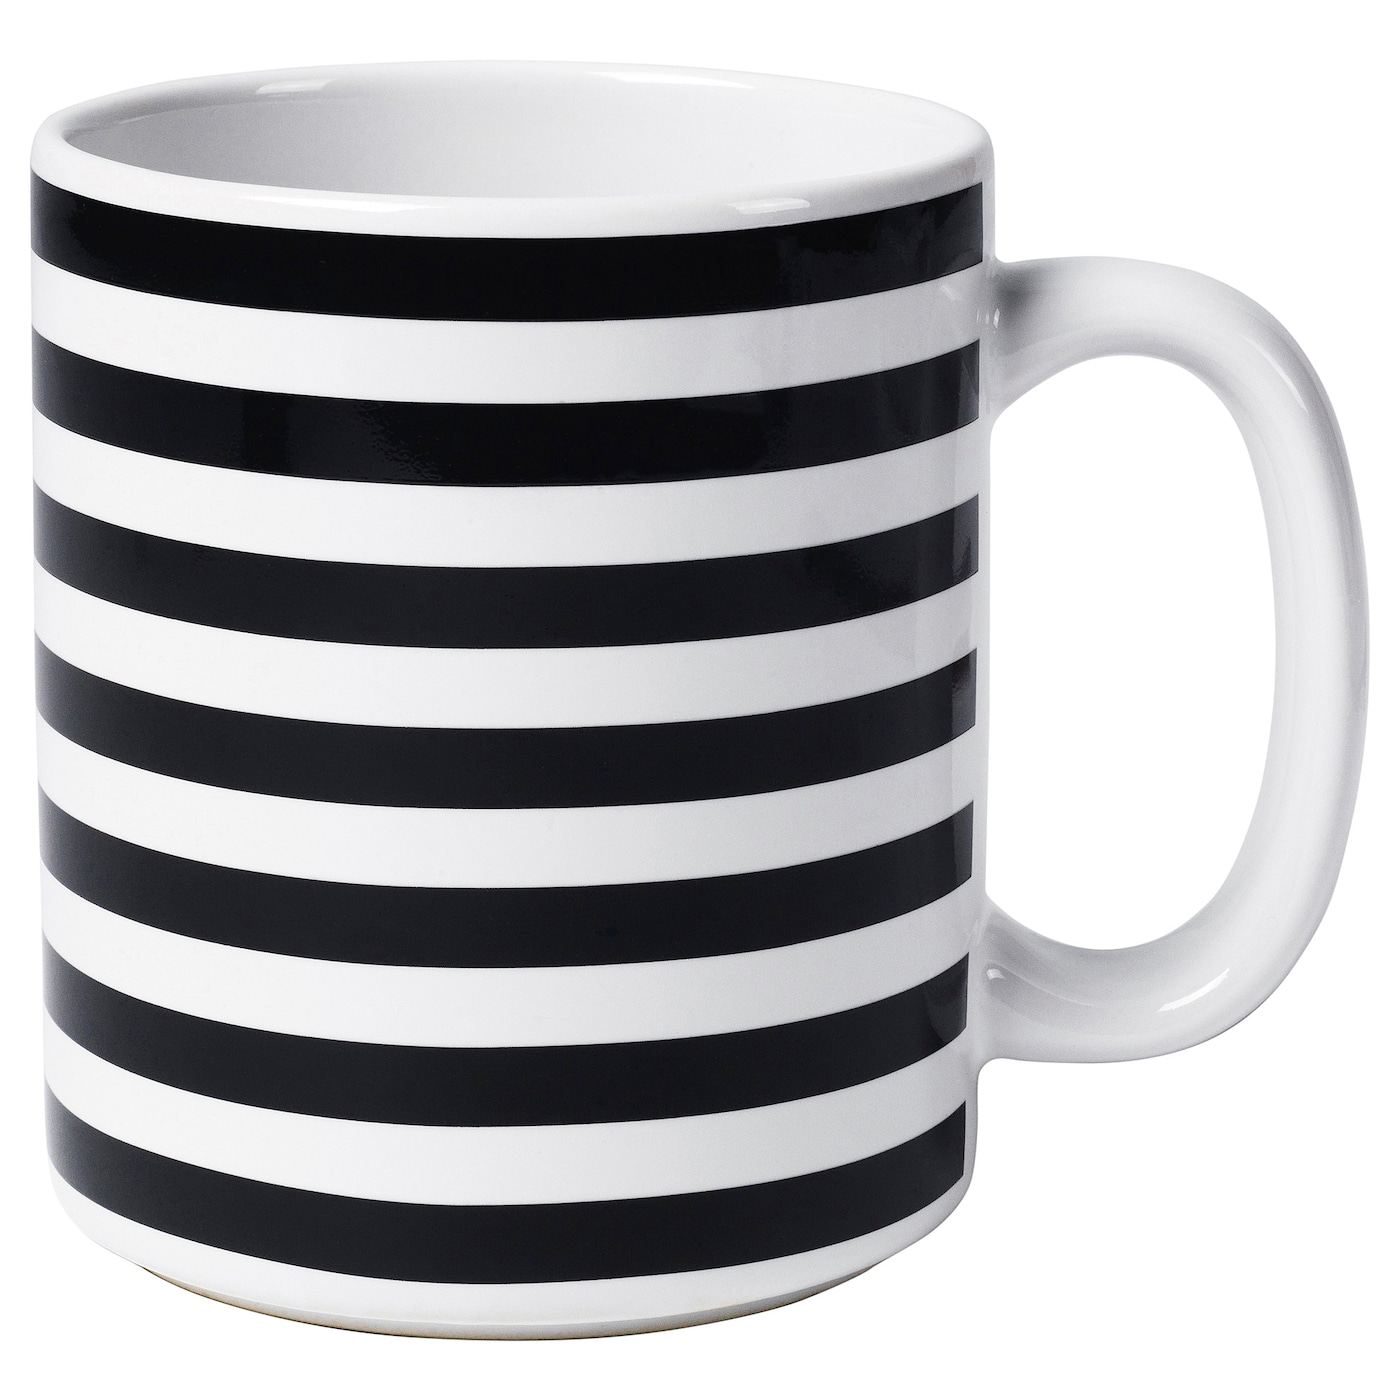 IKEA MORGONDOFT mug